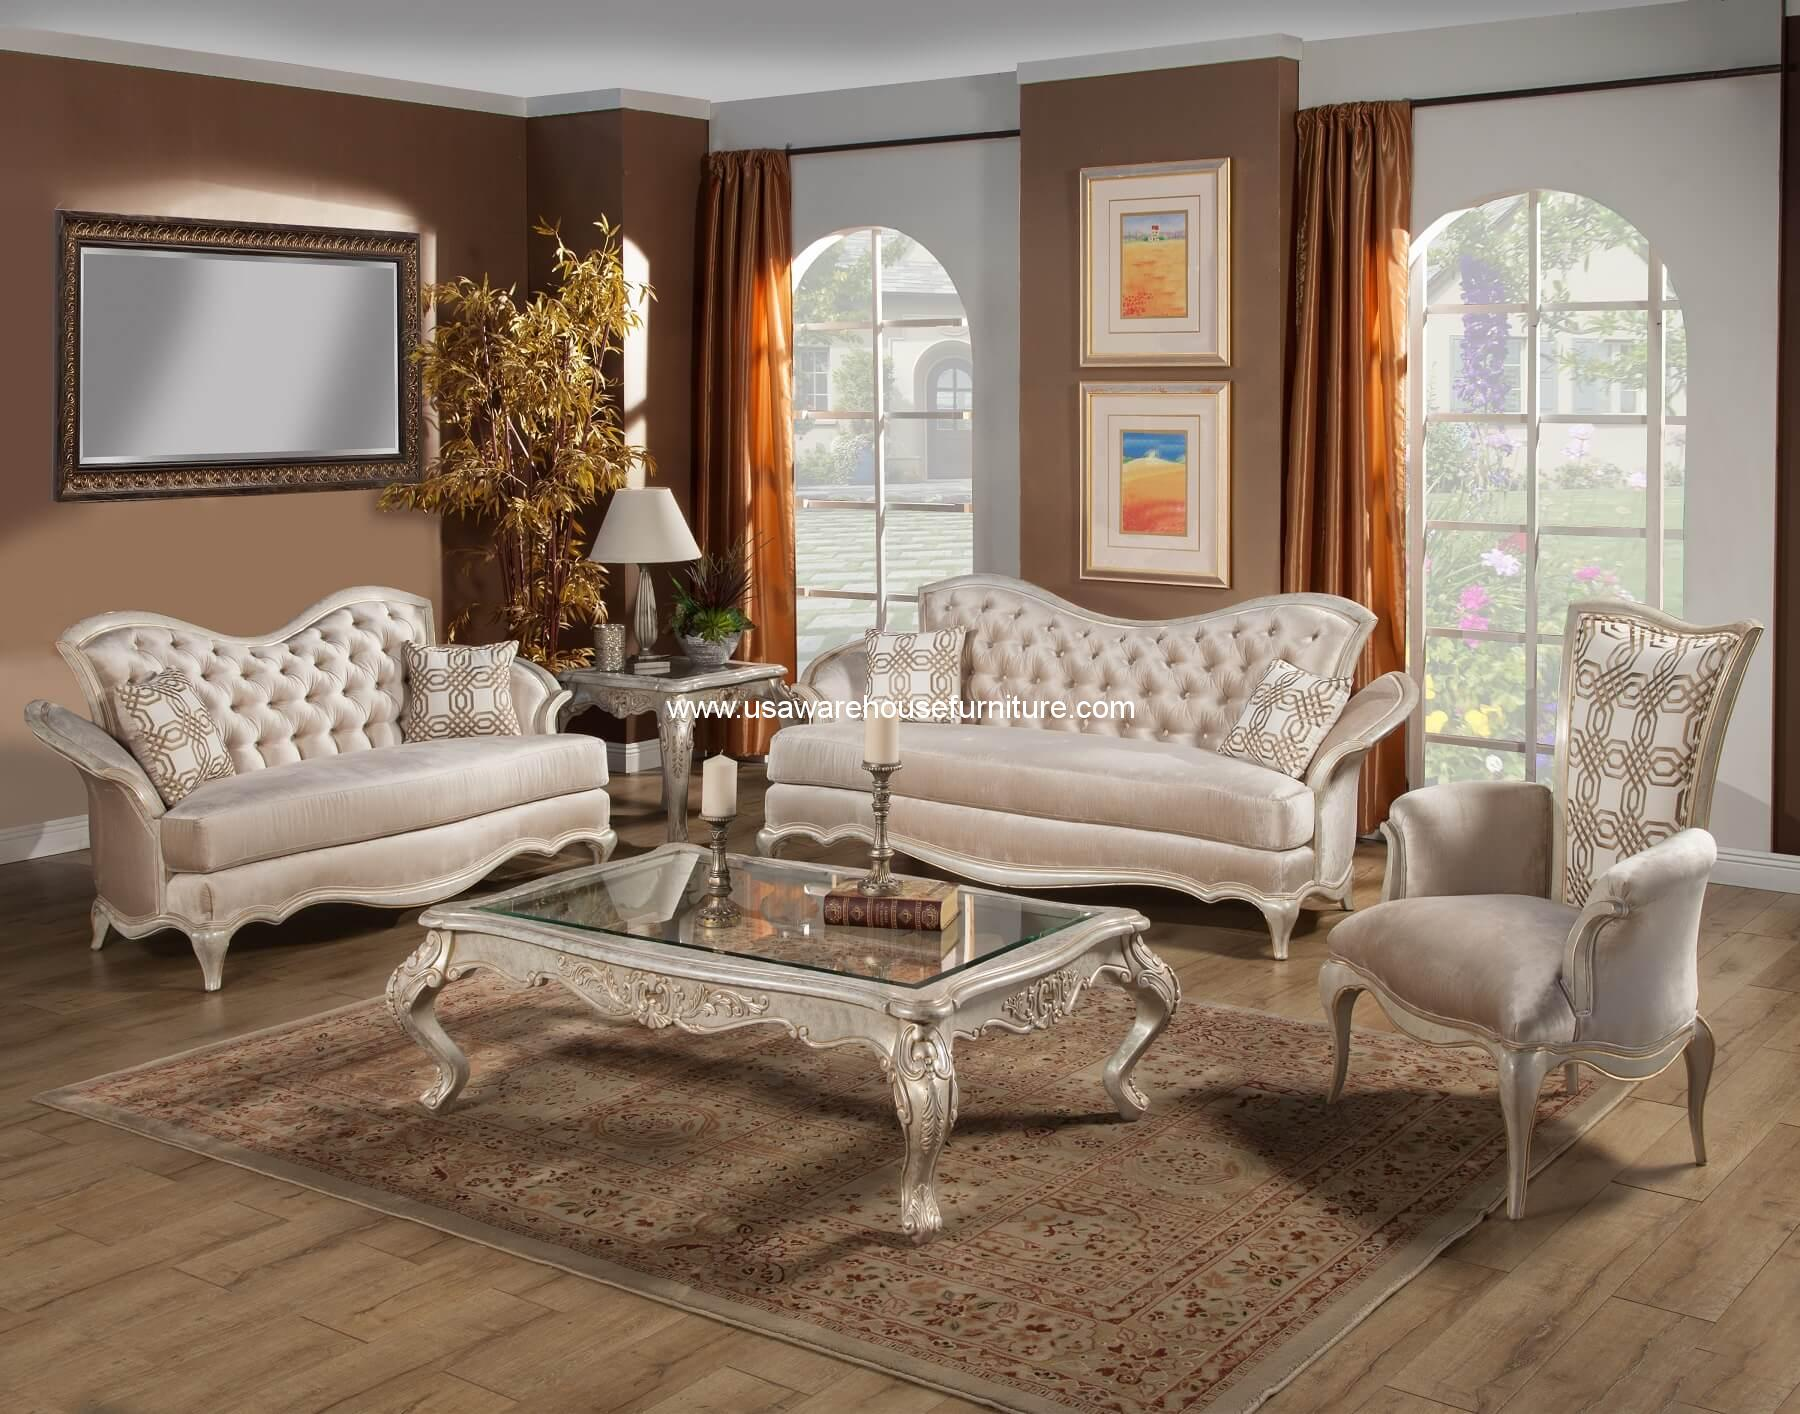 fabric sofa sets with wood trim style 2018 3 piece perlita set champagne gold